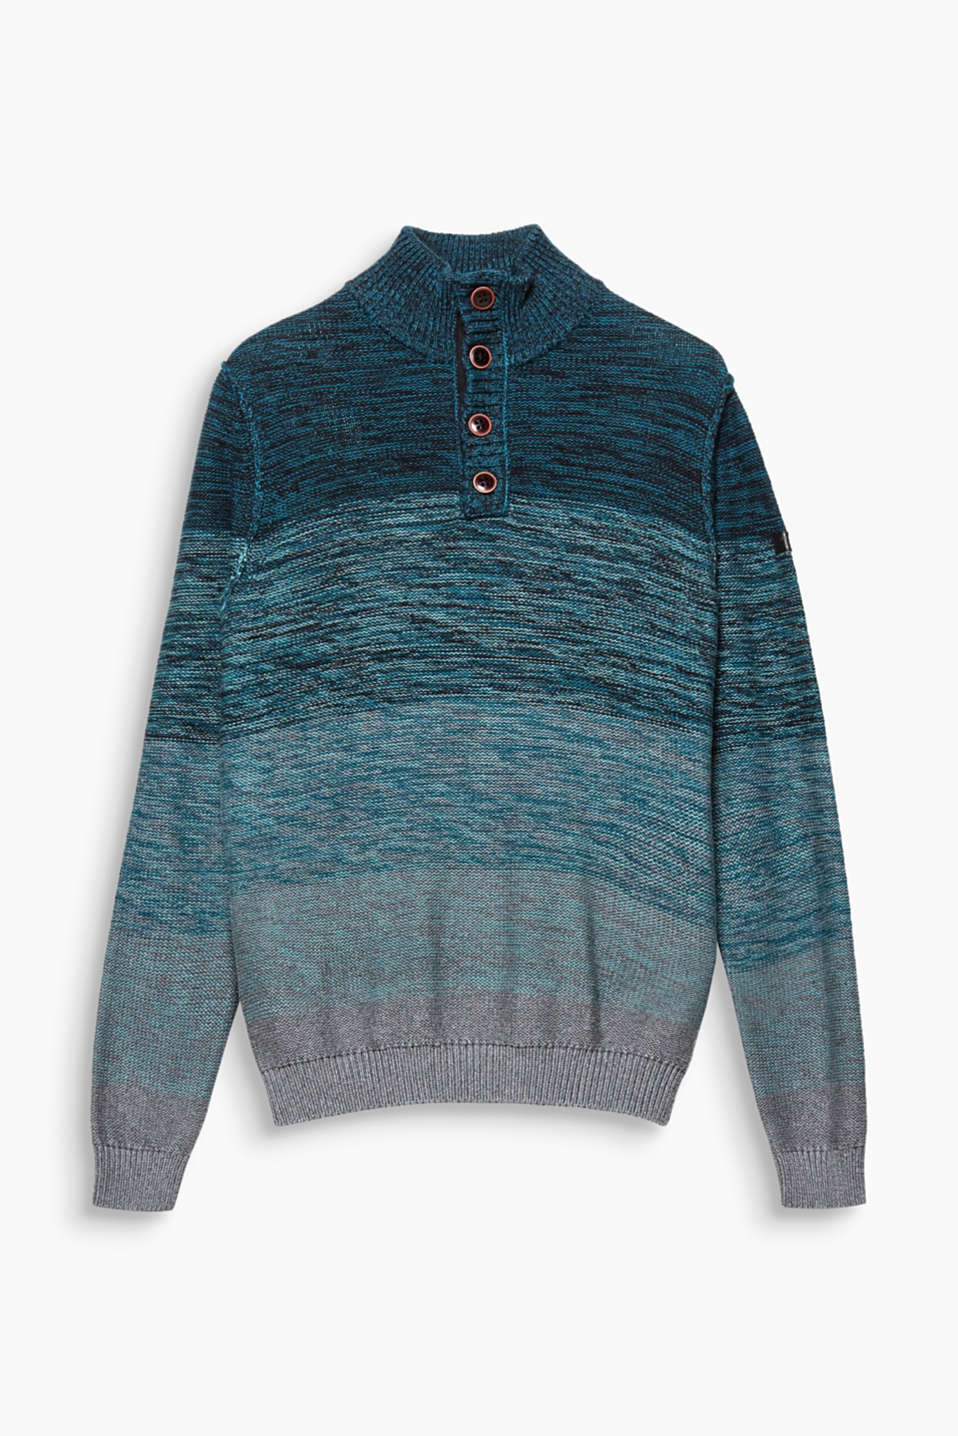 Colourful eye-catching piece! Thanks to its melange style, this 100% cotton jumper is extremely eye-catching